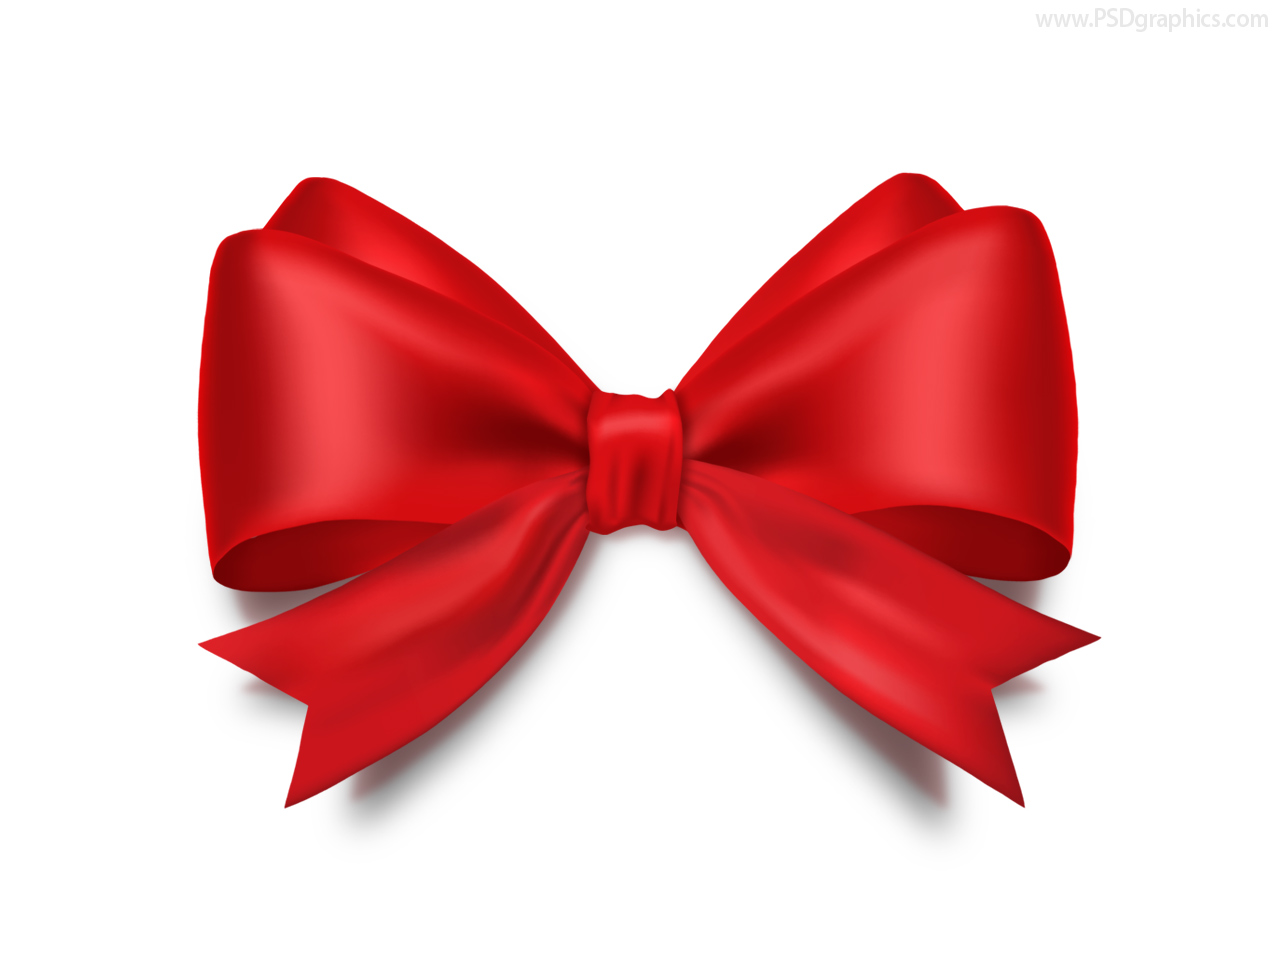 19 PSD Ribbon Bow Images